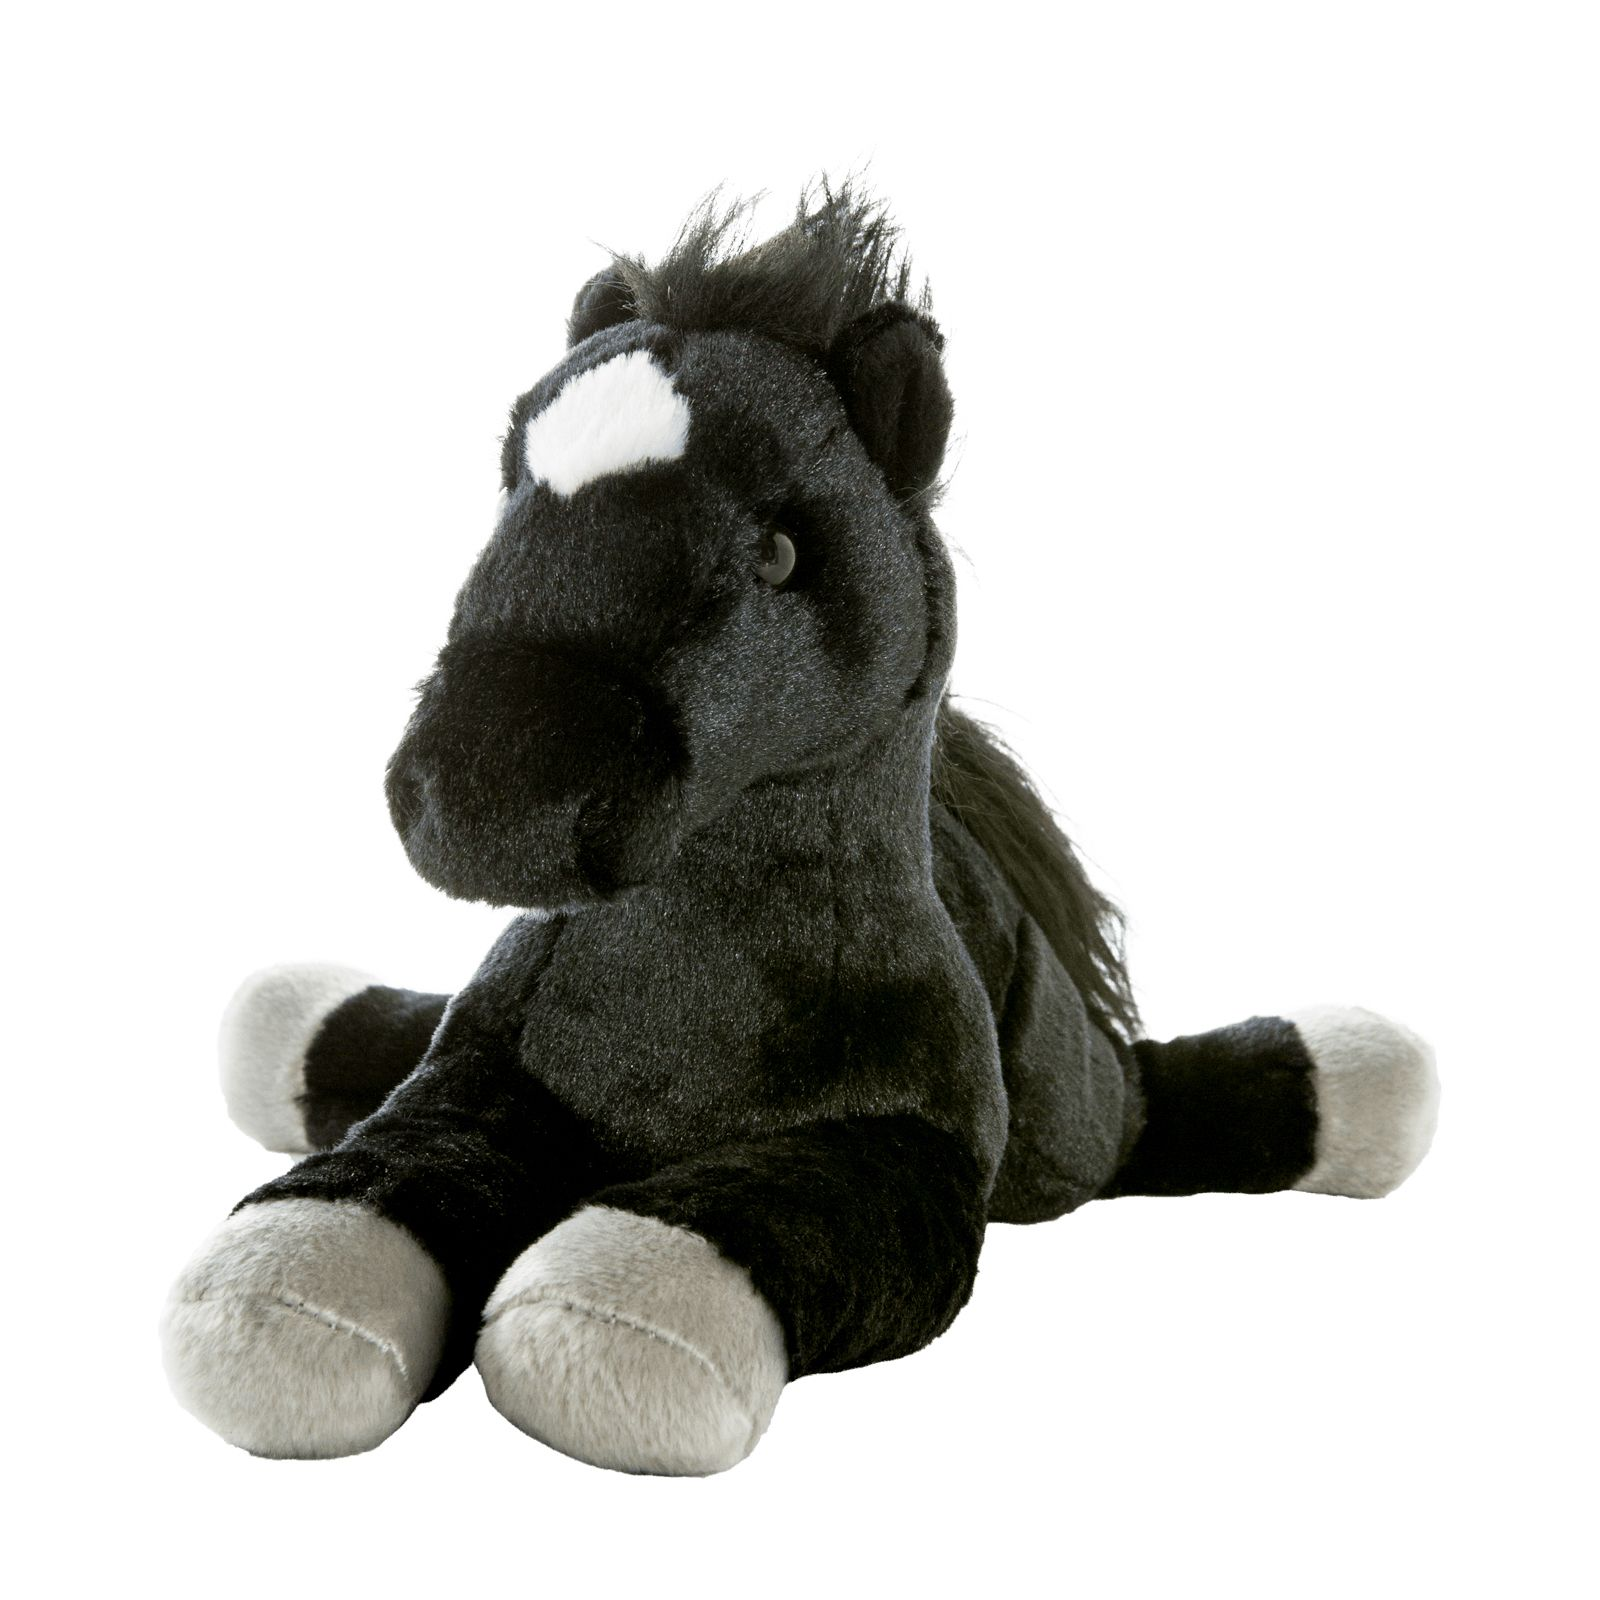 Plush Blackjack Horse